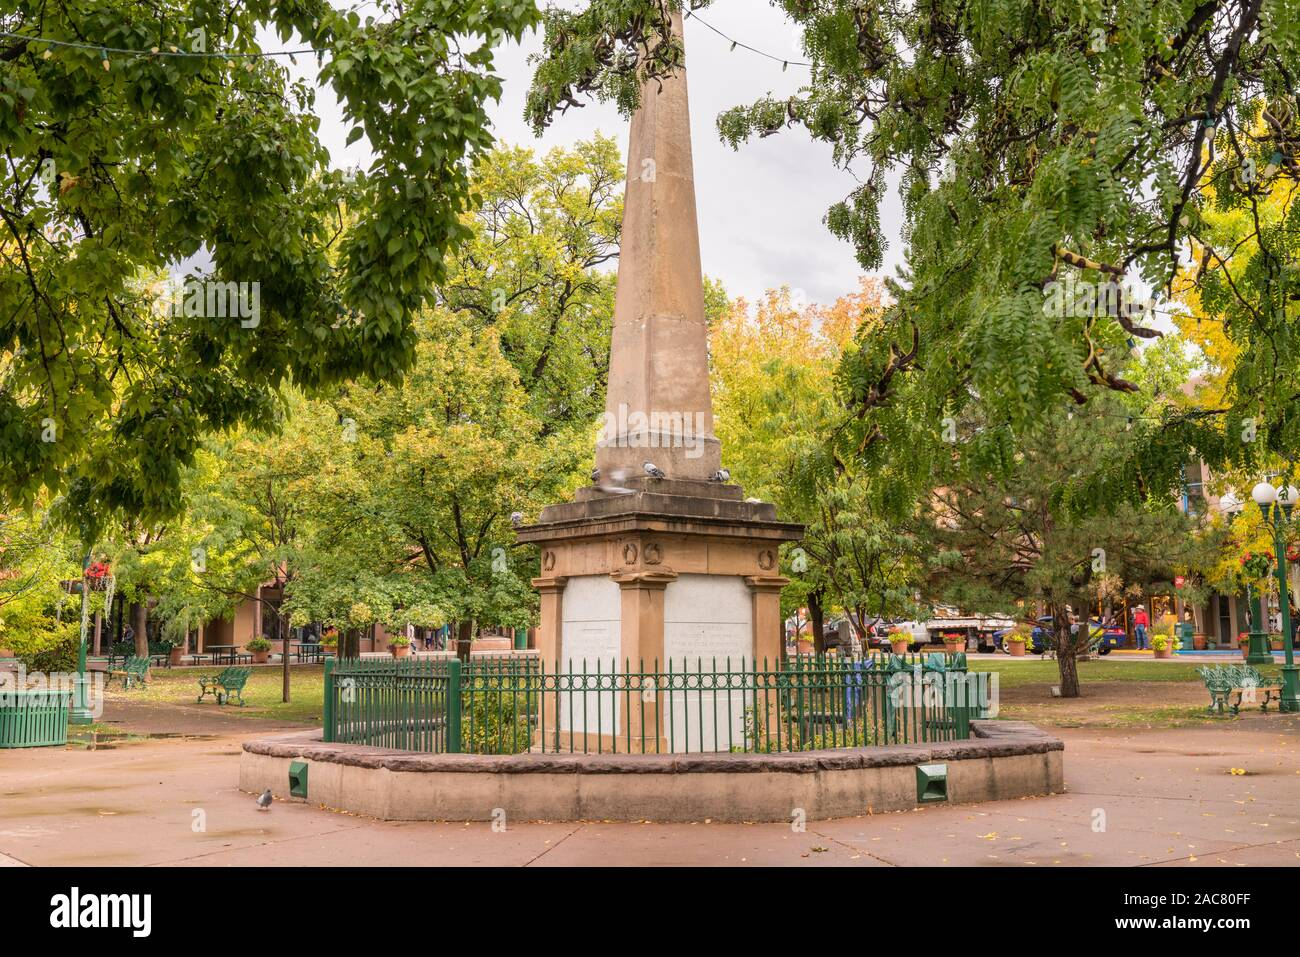 """Santa Fe, New Mexico - October 4, 2019: Santa Fe Plaza is a central square and tourist attraction.  It is also known as the """"Heart of Santa Fe"""" Stock Photo"""